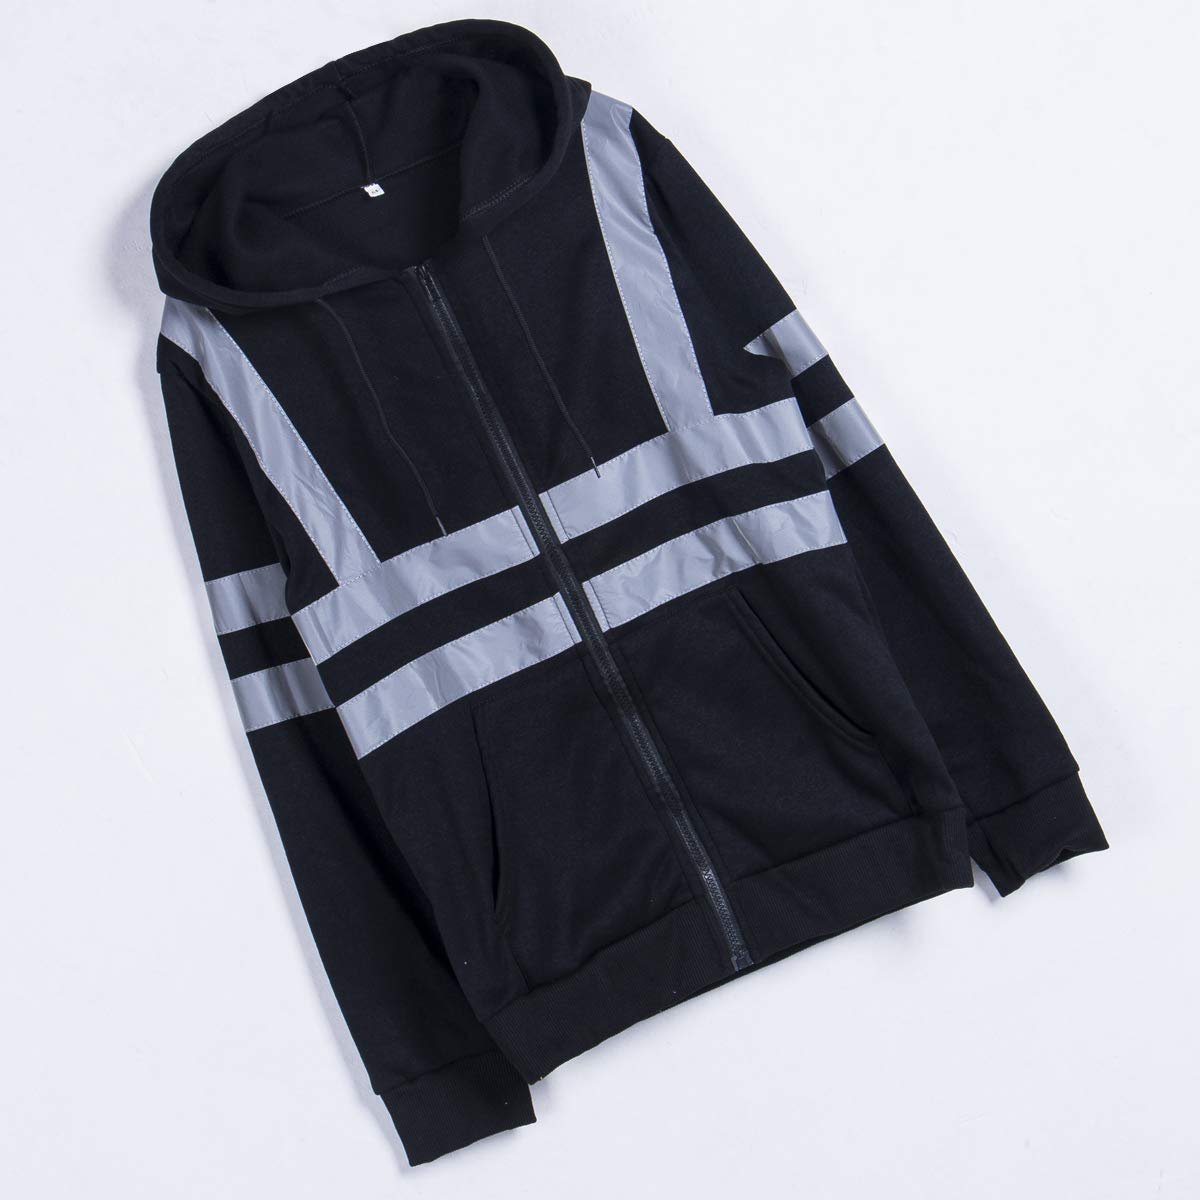 Mens Night Running Cycling Jacket High Visibility Reflective Stripes Safety Construction Traffic//Warehouse Protection Hoodies